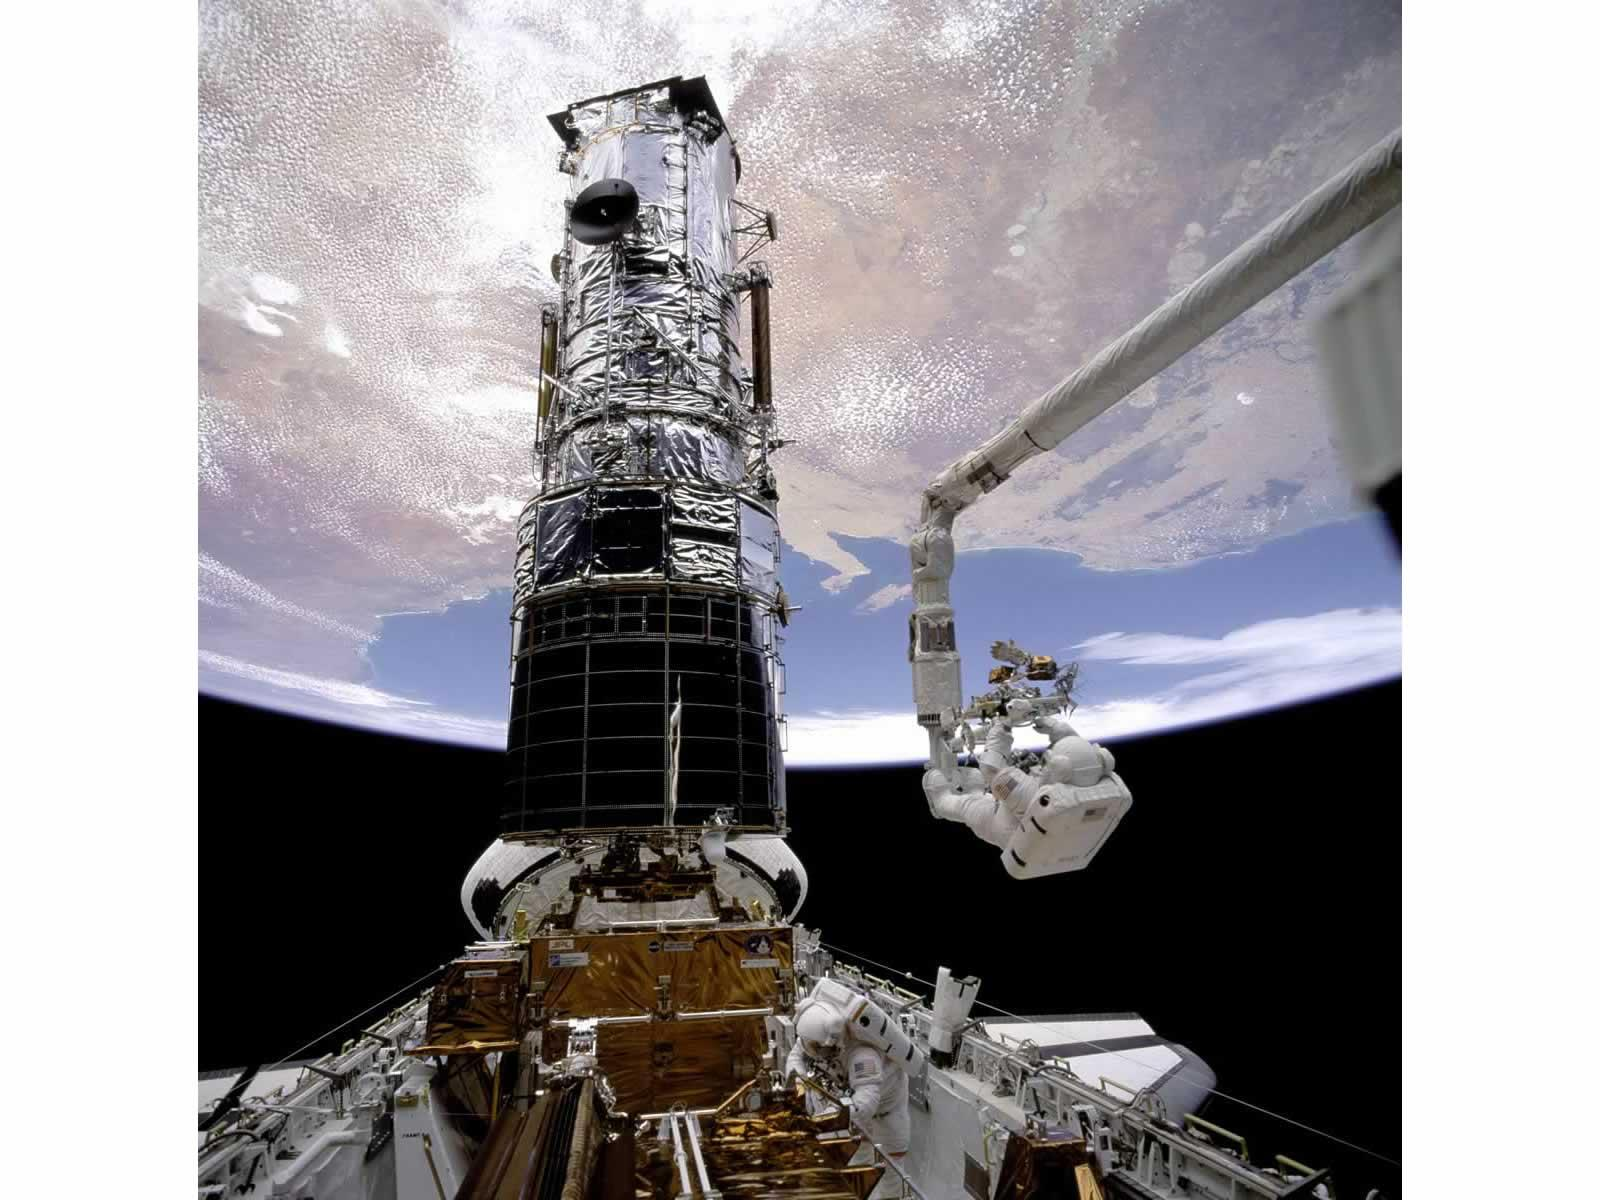 nasa should save the hubble telescope from destruction The shuttle orbiters are decommissioned, buran was destroyed in a hangar   nasa would never do this if the telescope was unusable and impossible to repair.